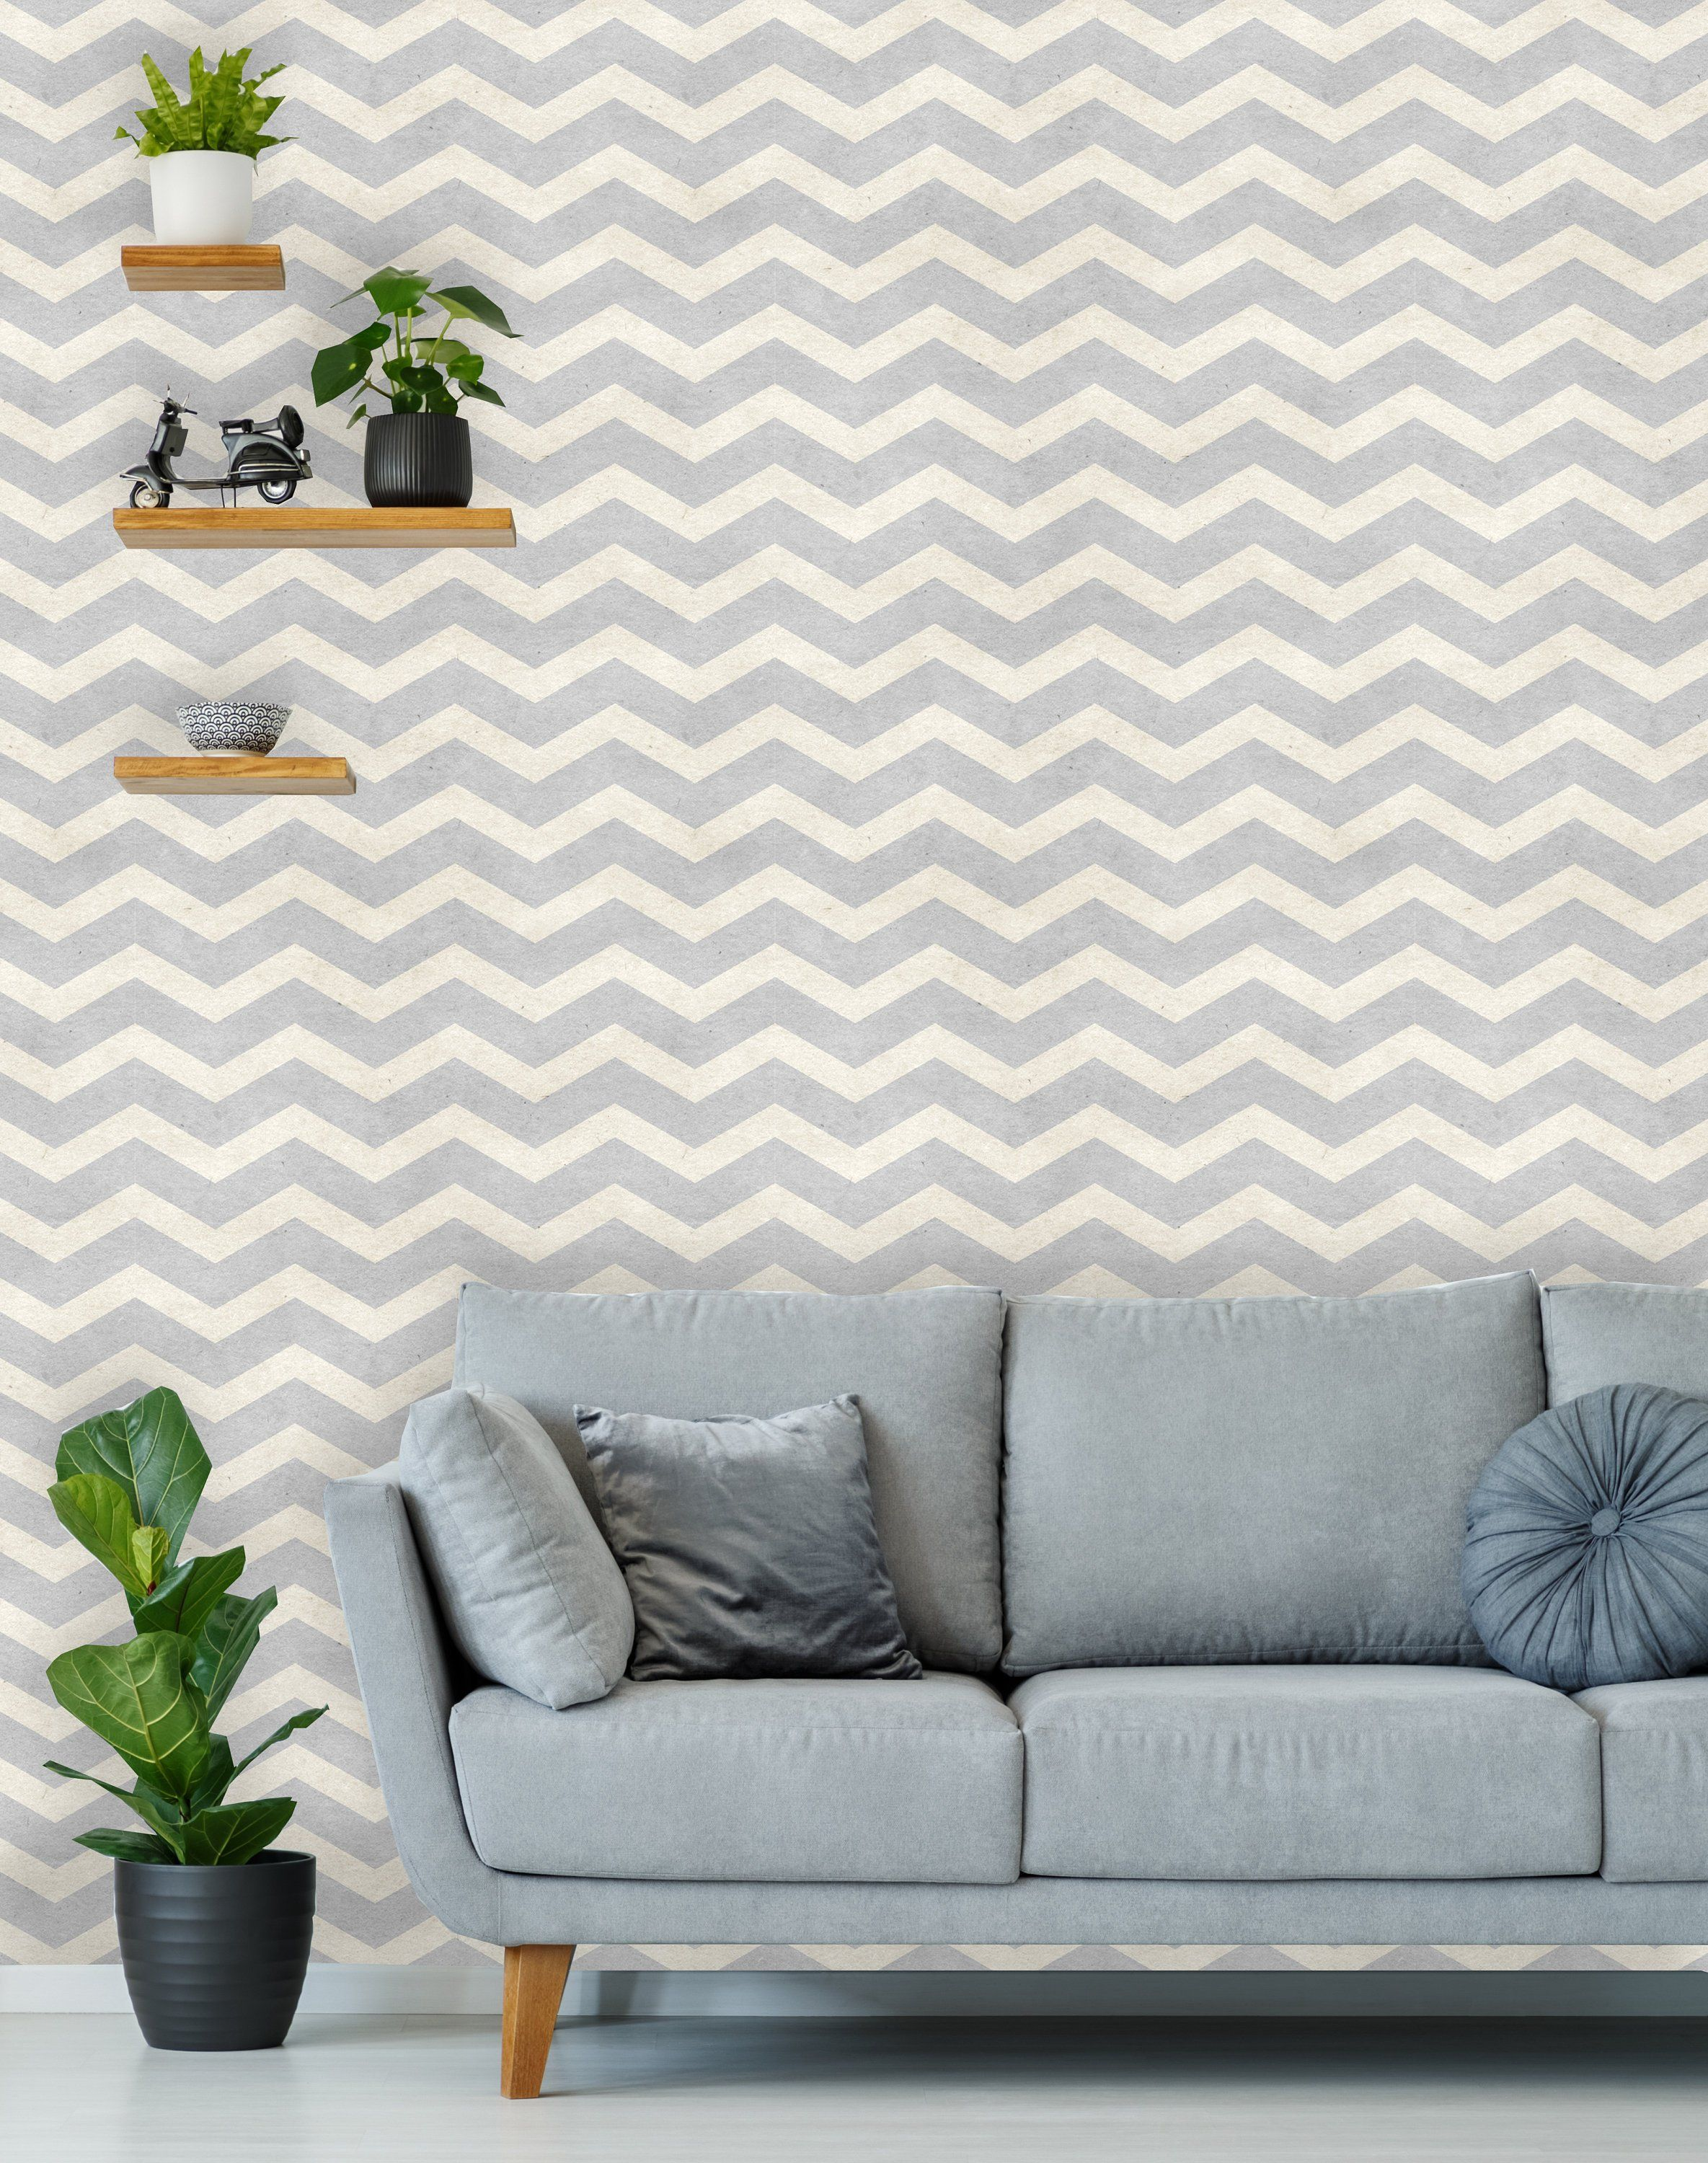 Removable Wallpaper Peel And Stick Chevron Wallpaper Self Etsy Paper Texture Wallpaper Removable Wallpaper Textured Wallpaper